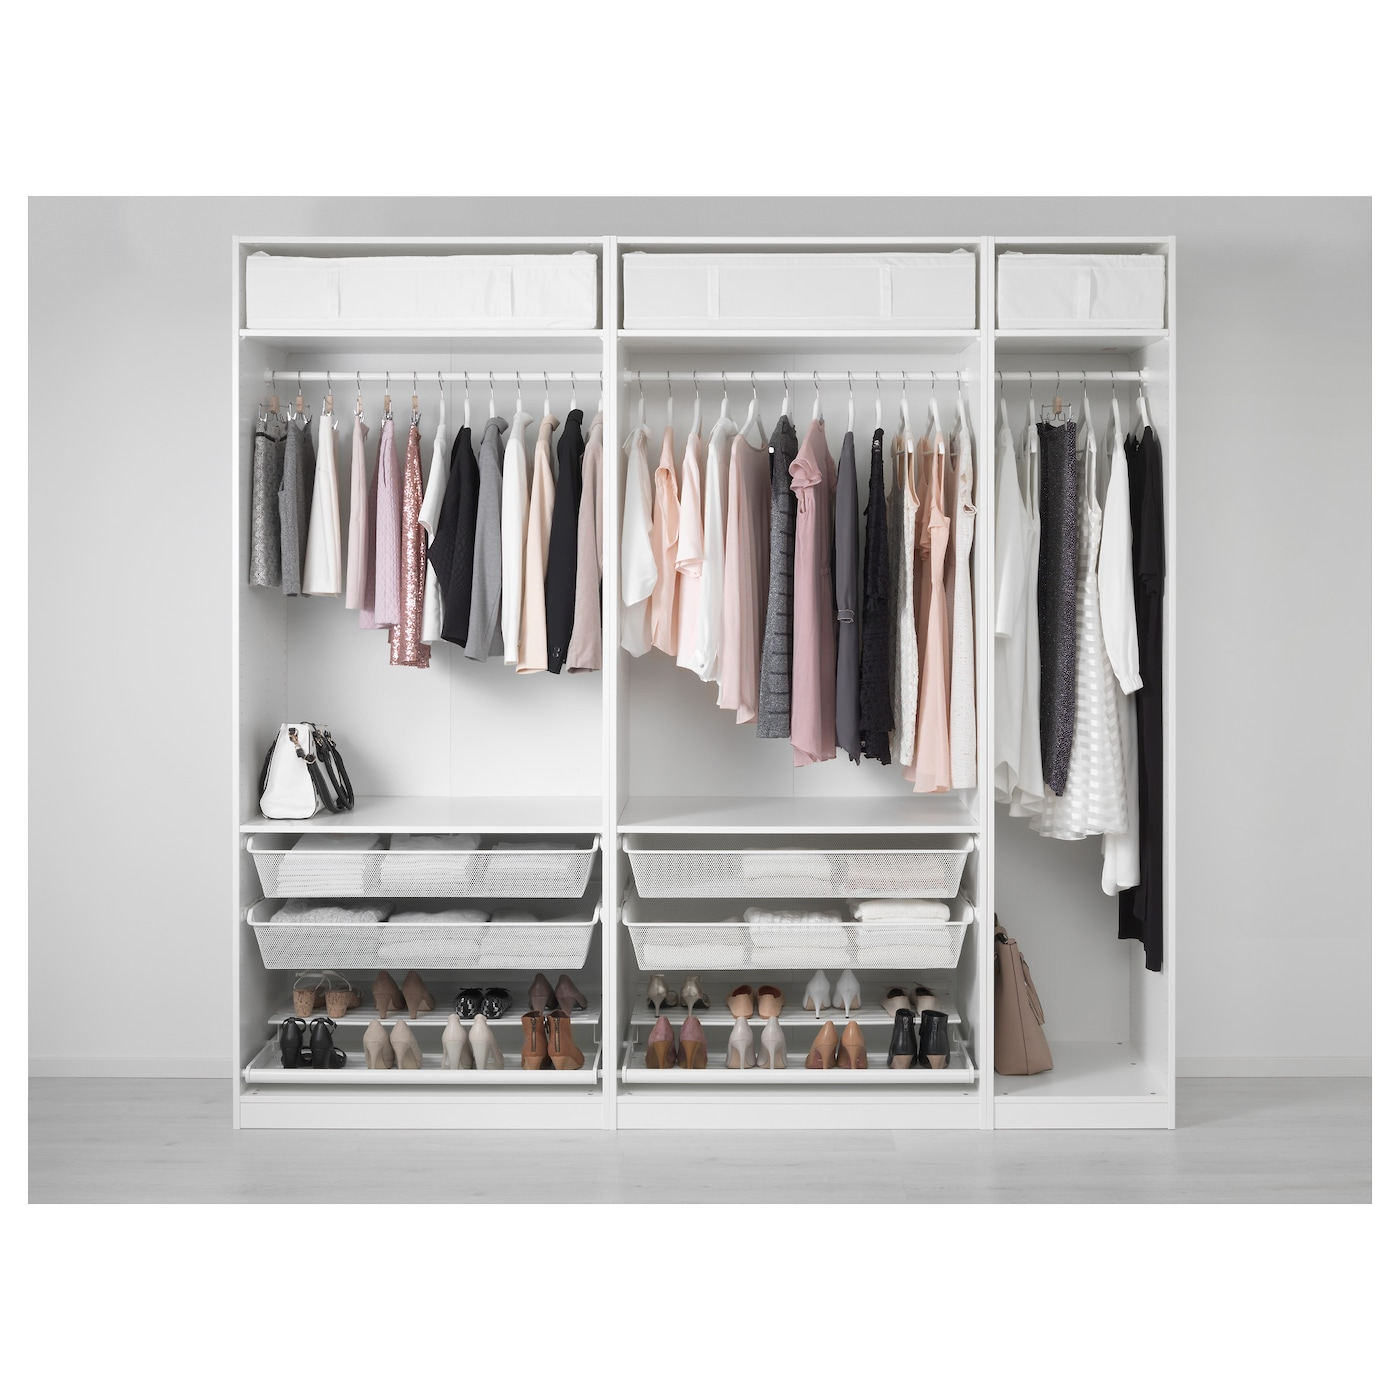 pax wardrobe white 250 x 58 x 236 cm ikea. Black Bedroom Furniture Sets. Home Design Ideas